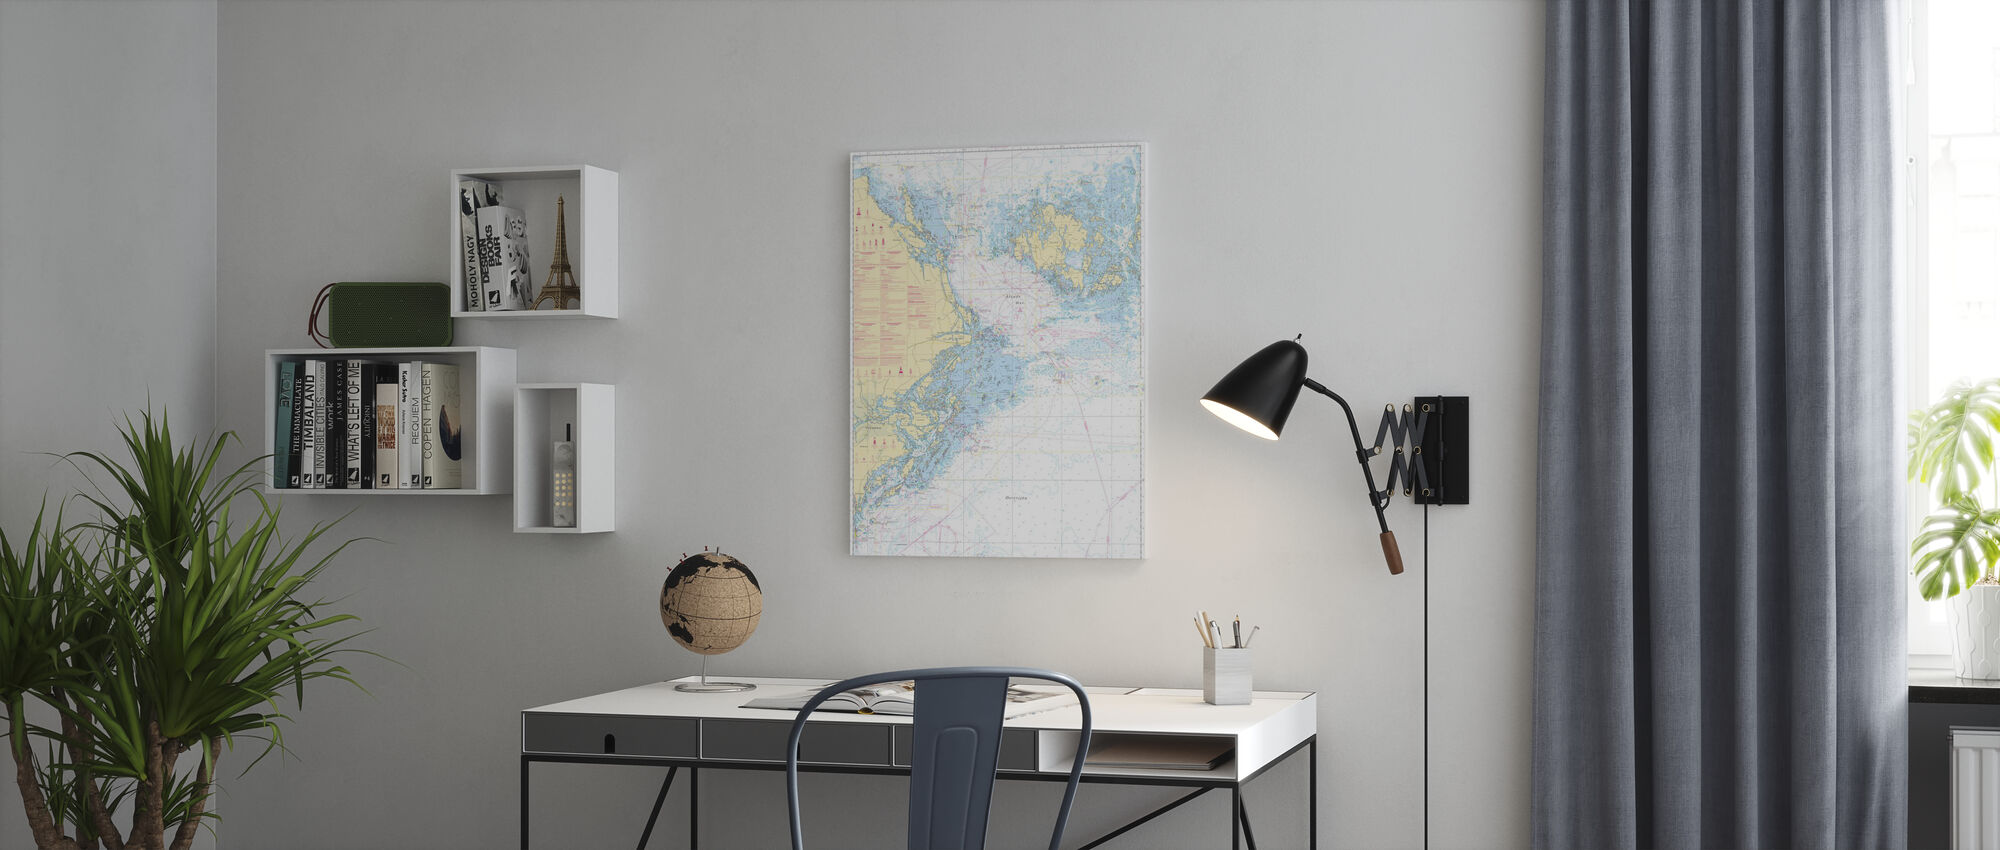 Sea Chart 61 - Landsort - Alands Hav - Canvas print - Office